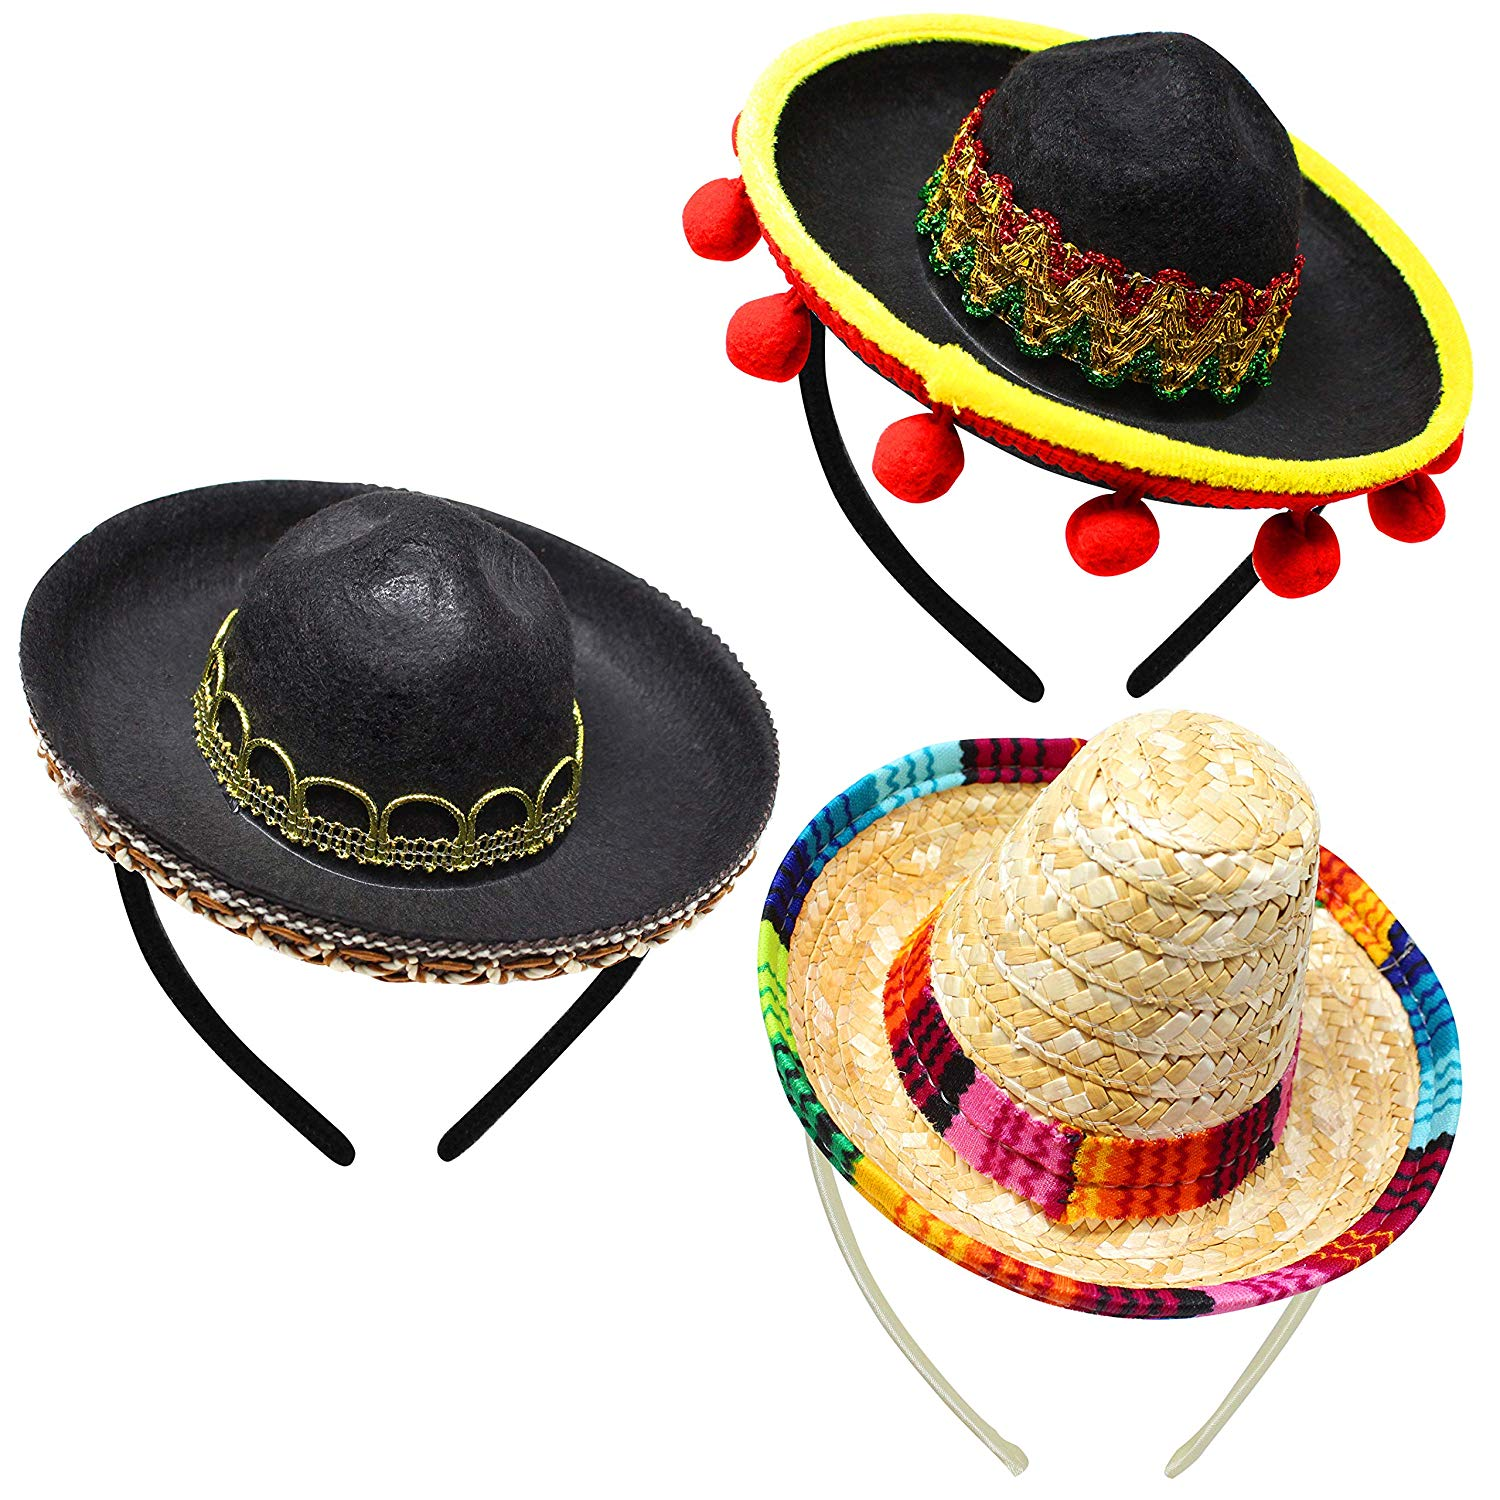 Cinco De Mayo Fiesta Fabric and Straw Sombrero Headbands